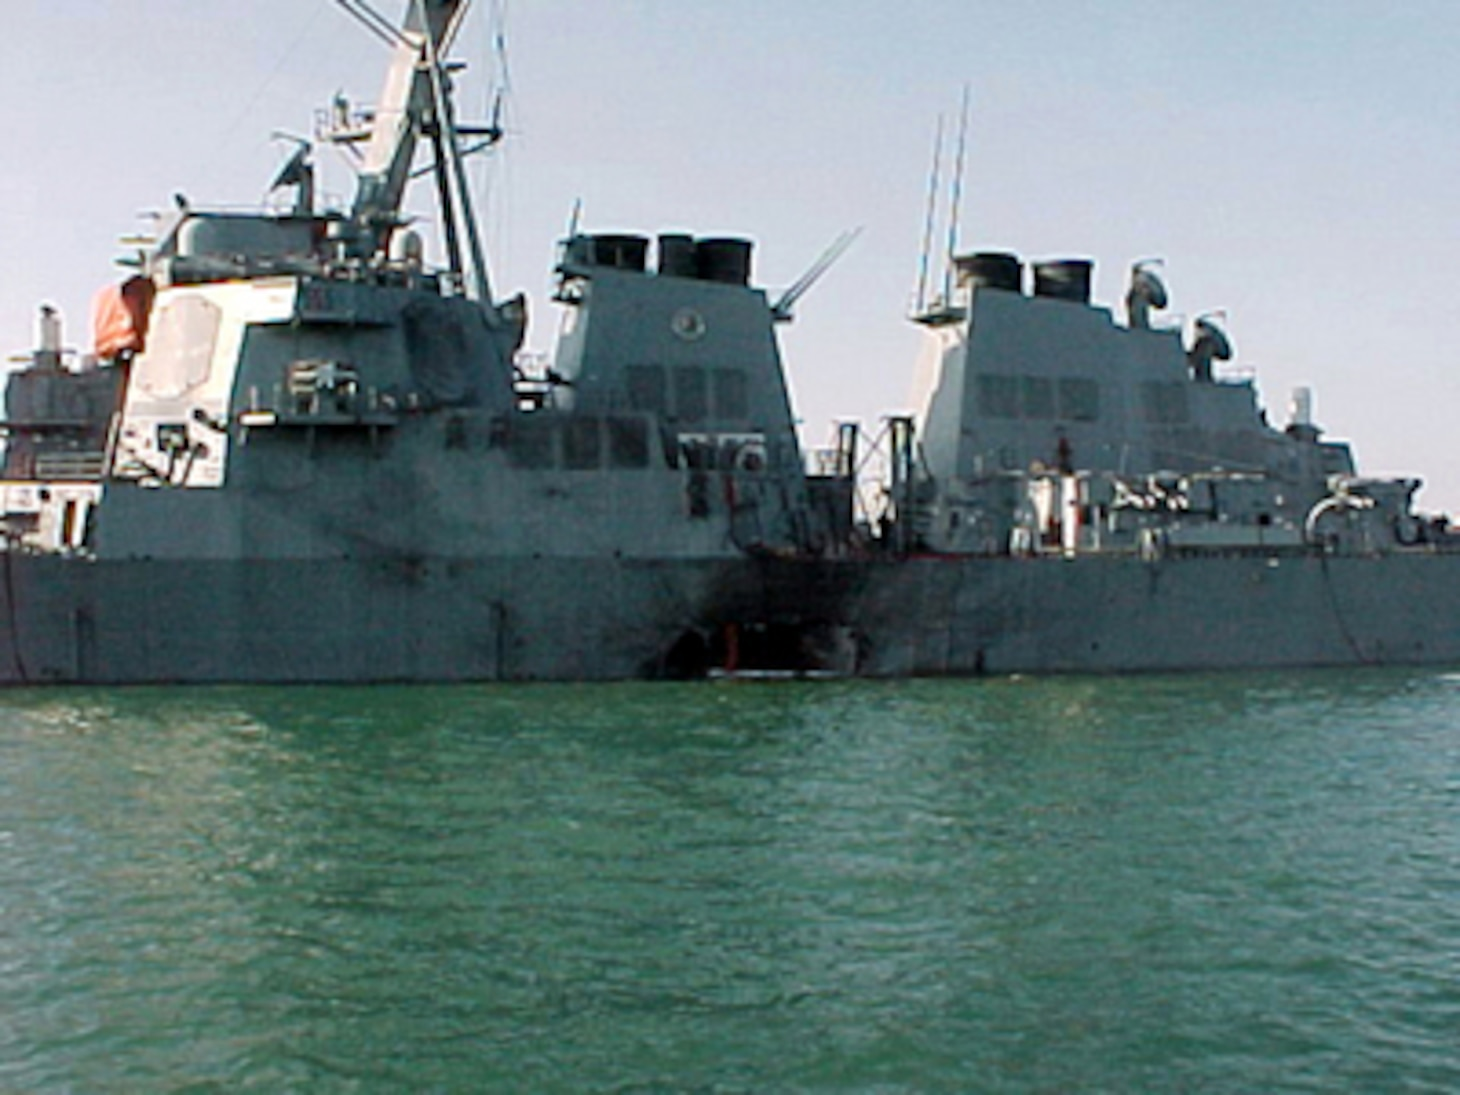 Port side view showing the damage sustained by the Arleigh Burke class guided missile destroyer USS Cole (DDG 67) on October 12, 2000, after a suspected terrorist bomb exploded during a refueling operation in the port of Aden, Yemen. USS Cole is on a regular scheduled six-month deployment.